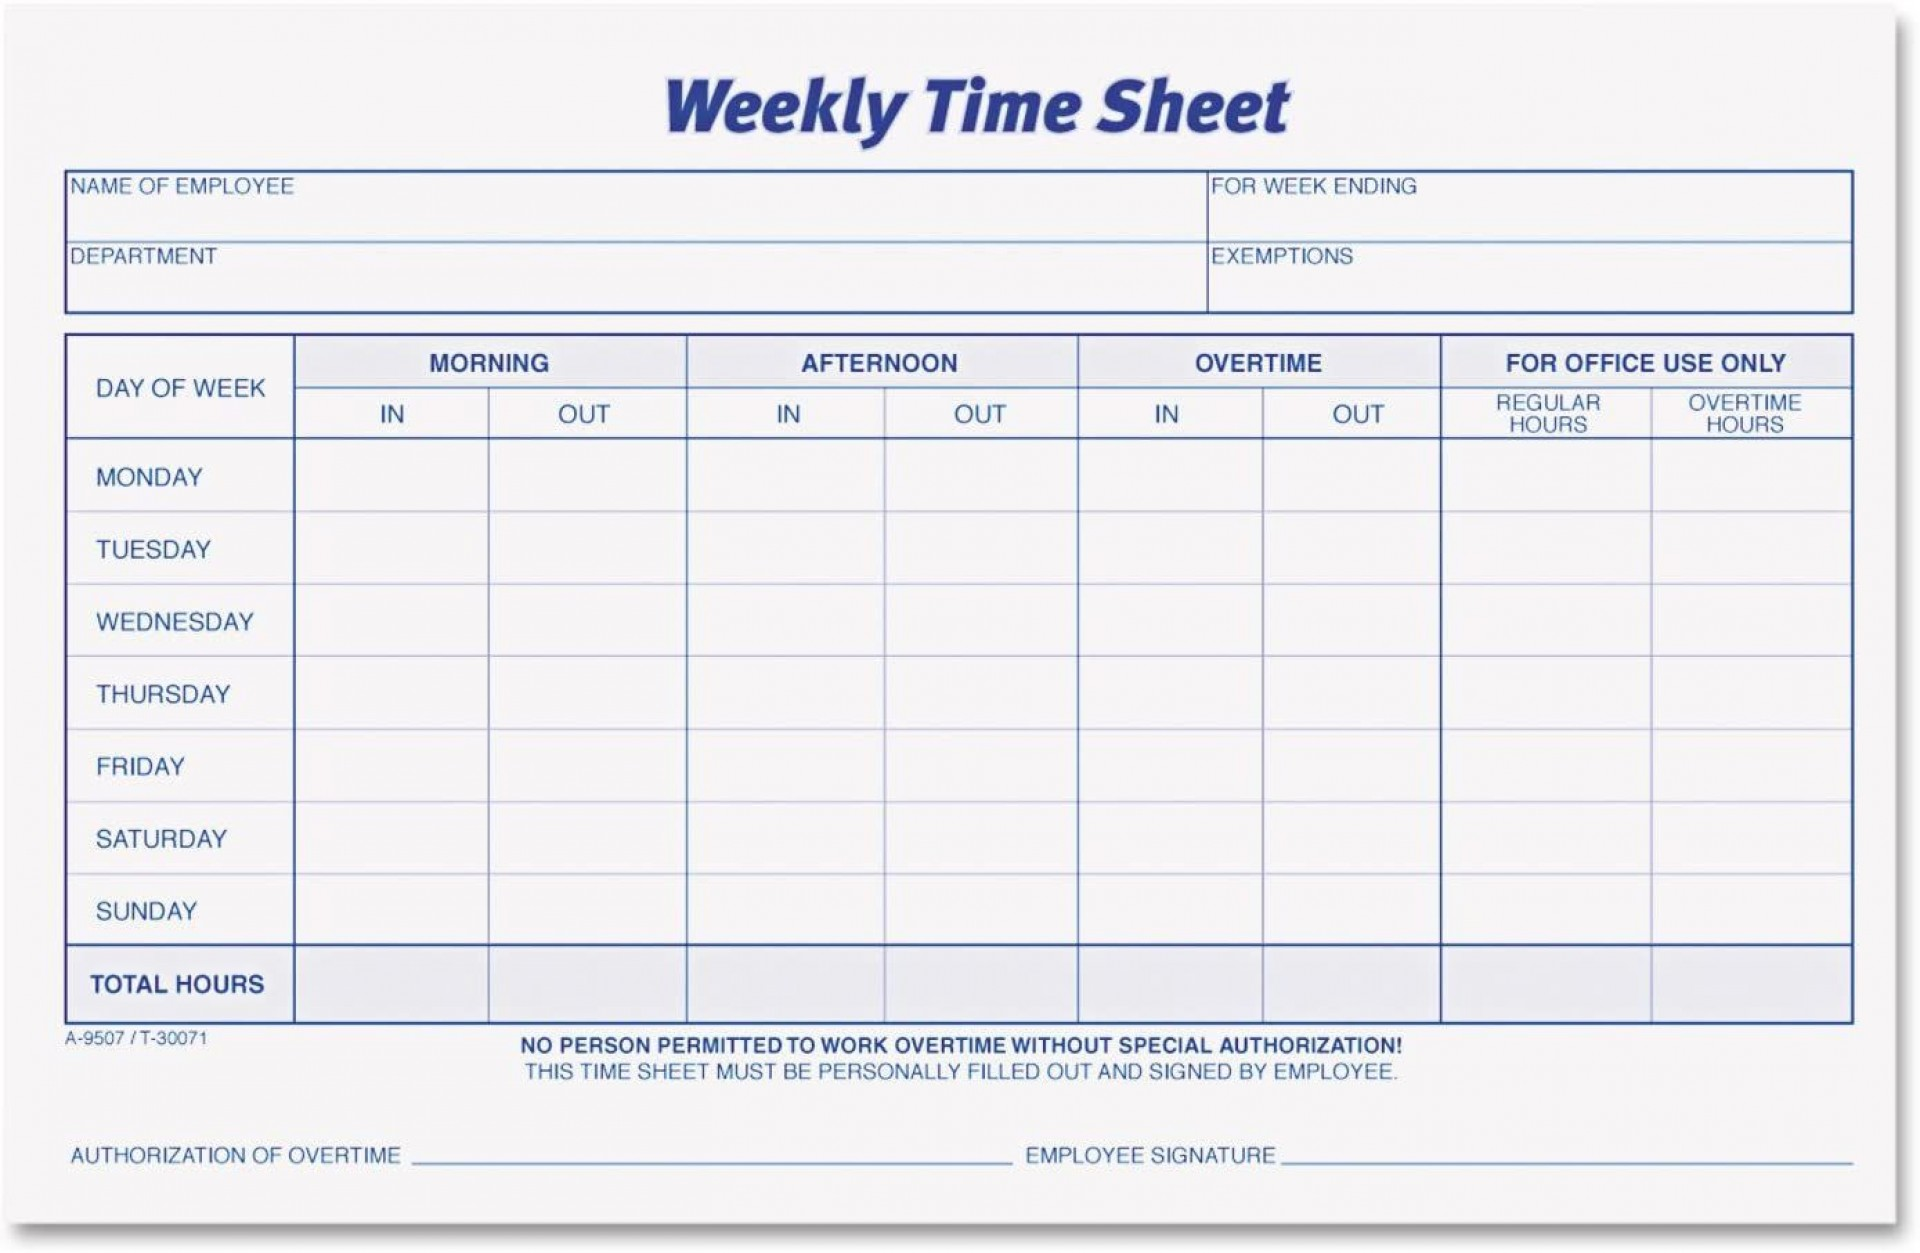 001 Unusual Employee Time Card Form Inspiration  Timesheet Template Excel Sheet Free1920